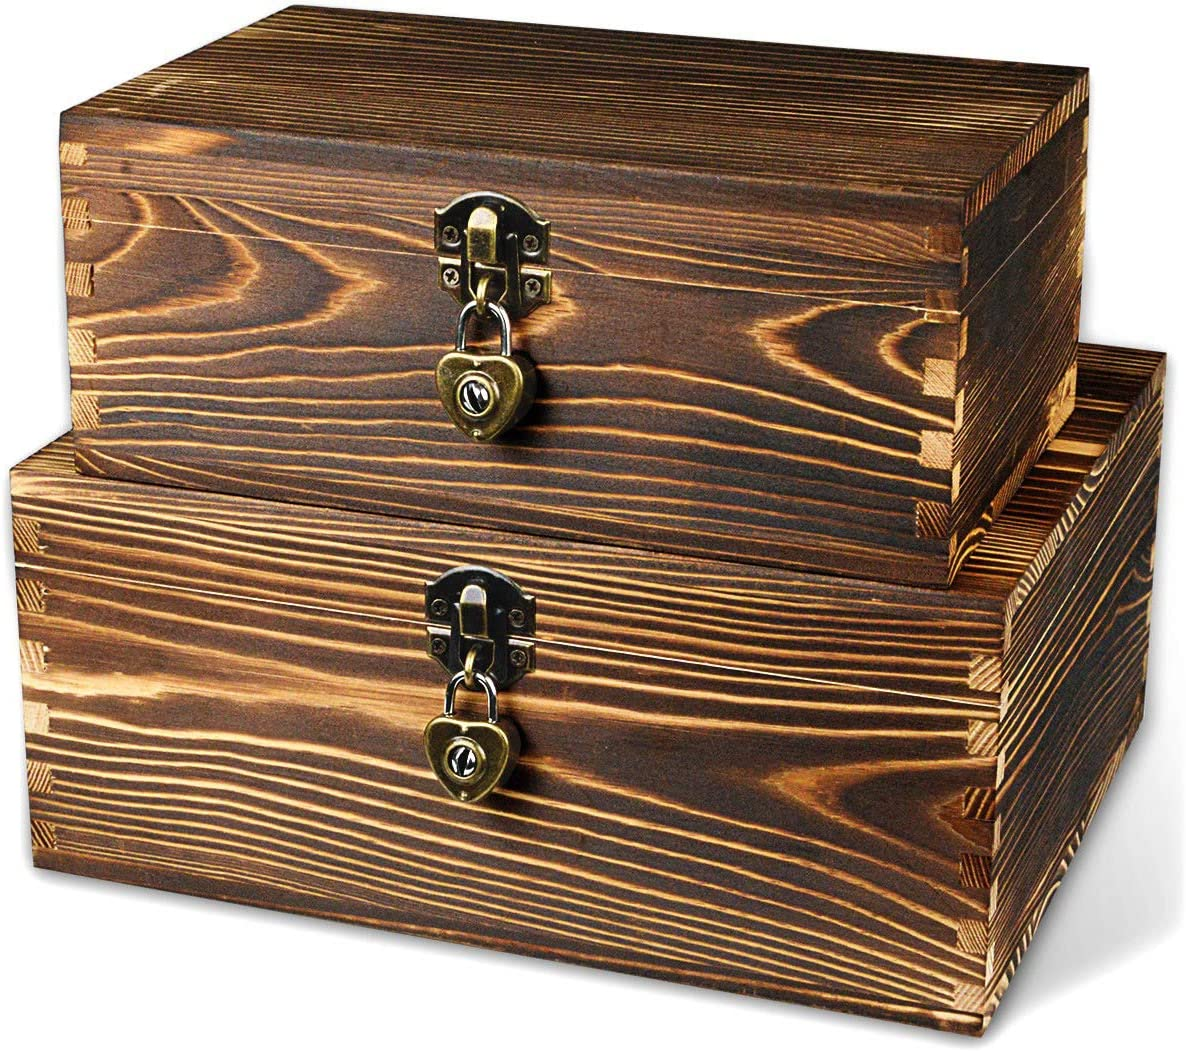 BigHala Wooden Box with Lock and Keys Hinged Lid Treasure Chest Memory Hobby Preservation Rustic Decorative Archival Organizer Jewelry Gadget Trinkets Keepsake Wood Storage Boxes 2 Pack Smokey Color